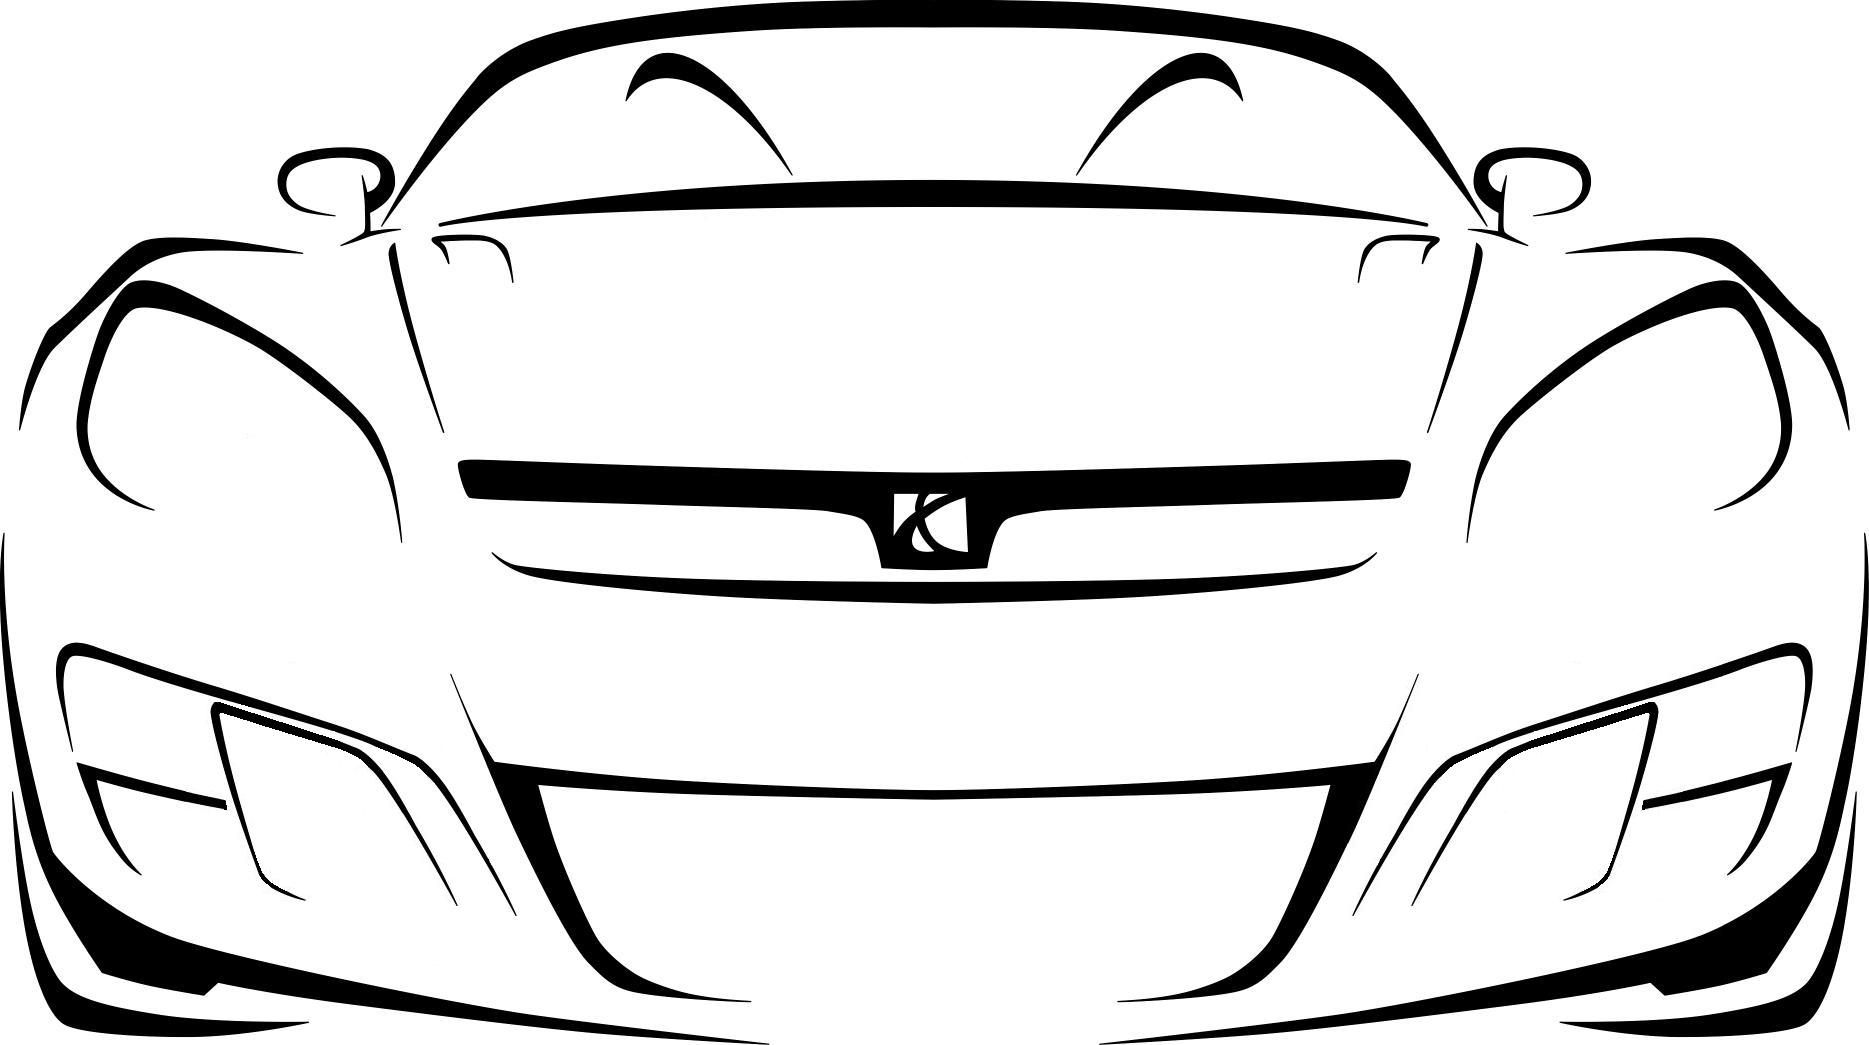 Outlines Of Cars